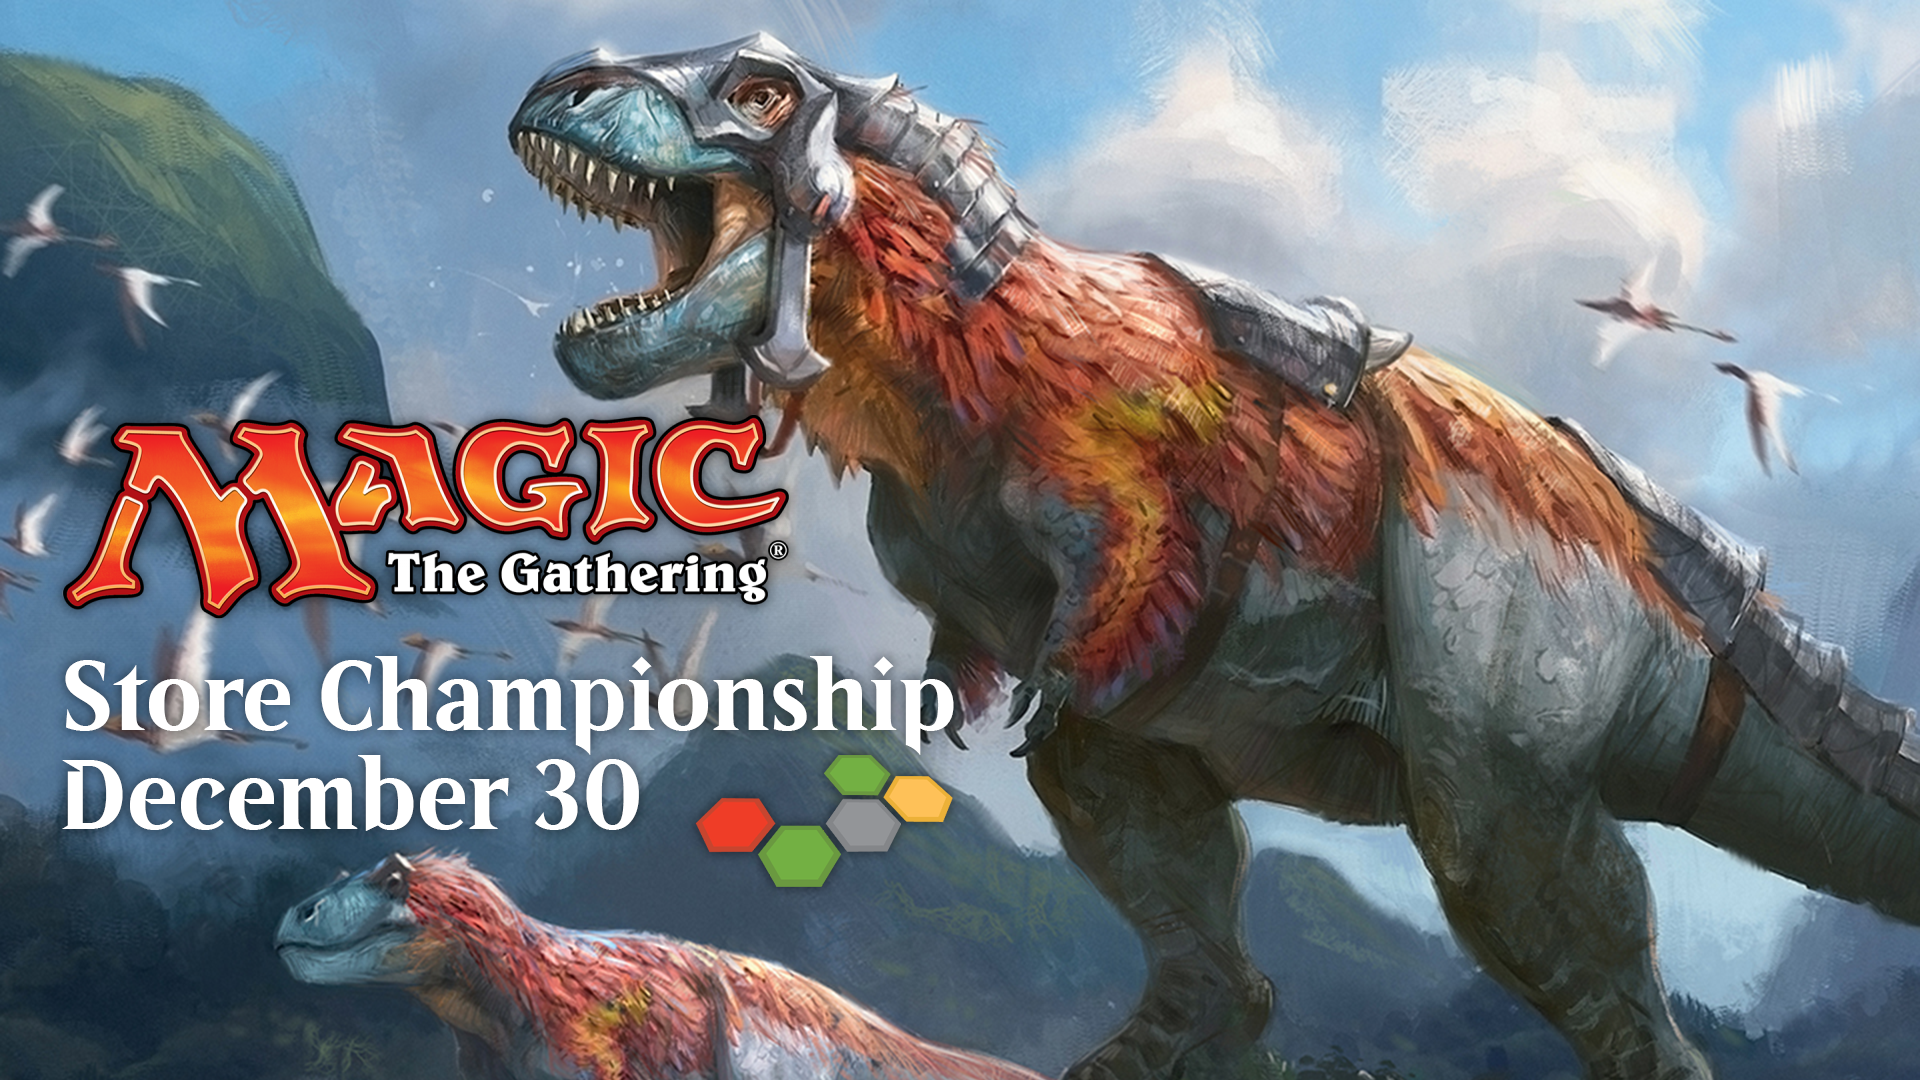 Store Championship 2017 Magic Event Image.png